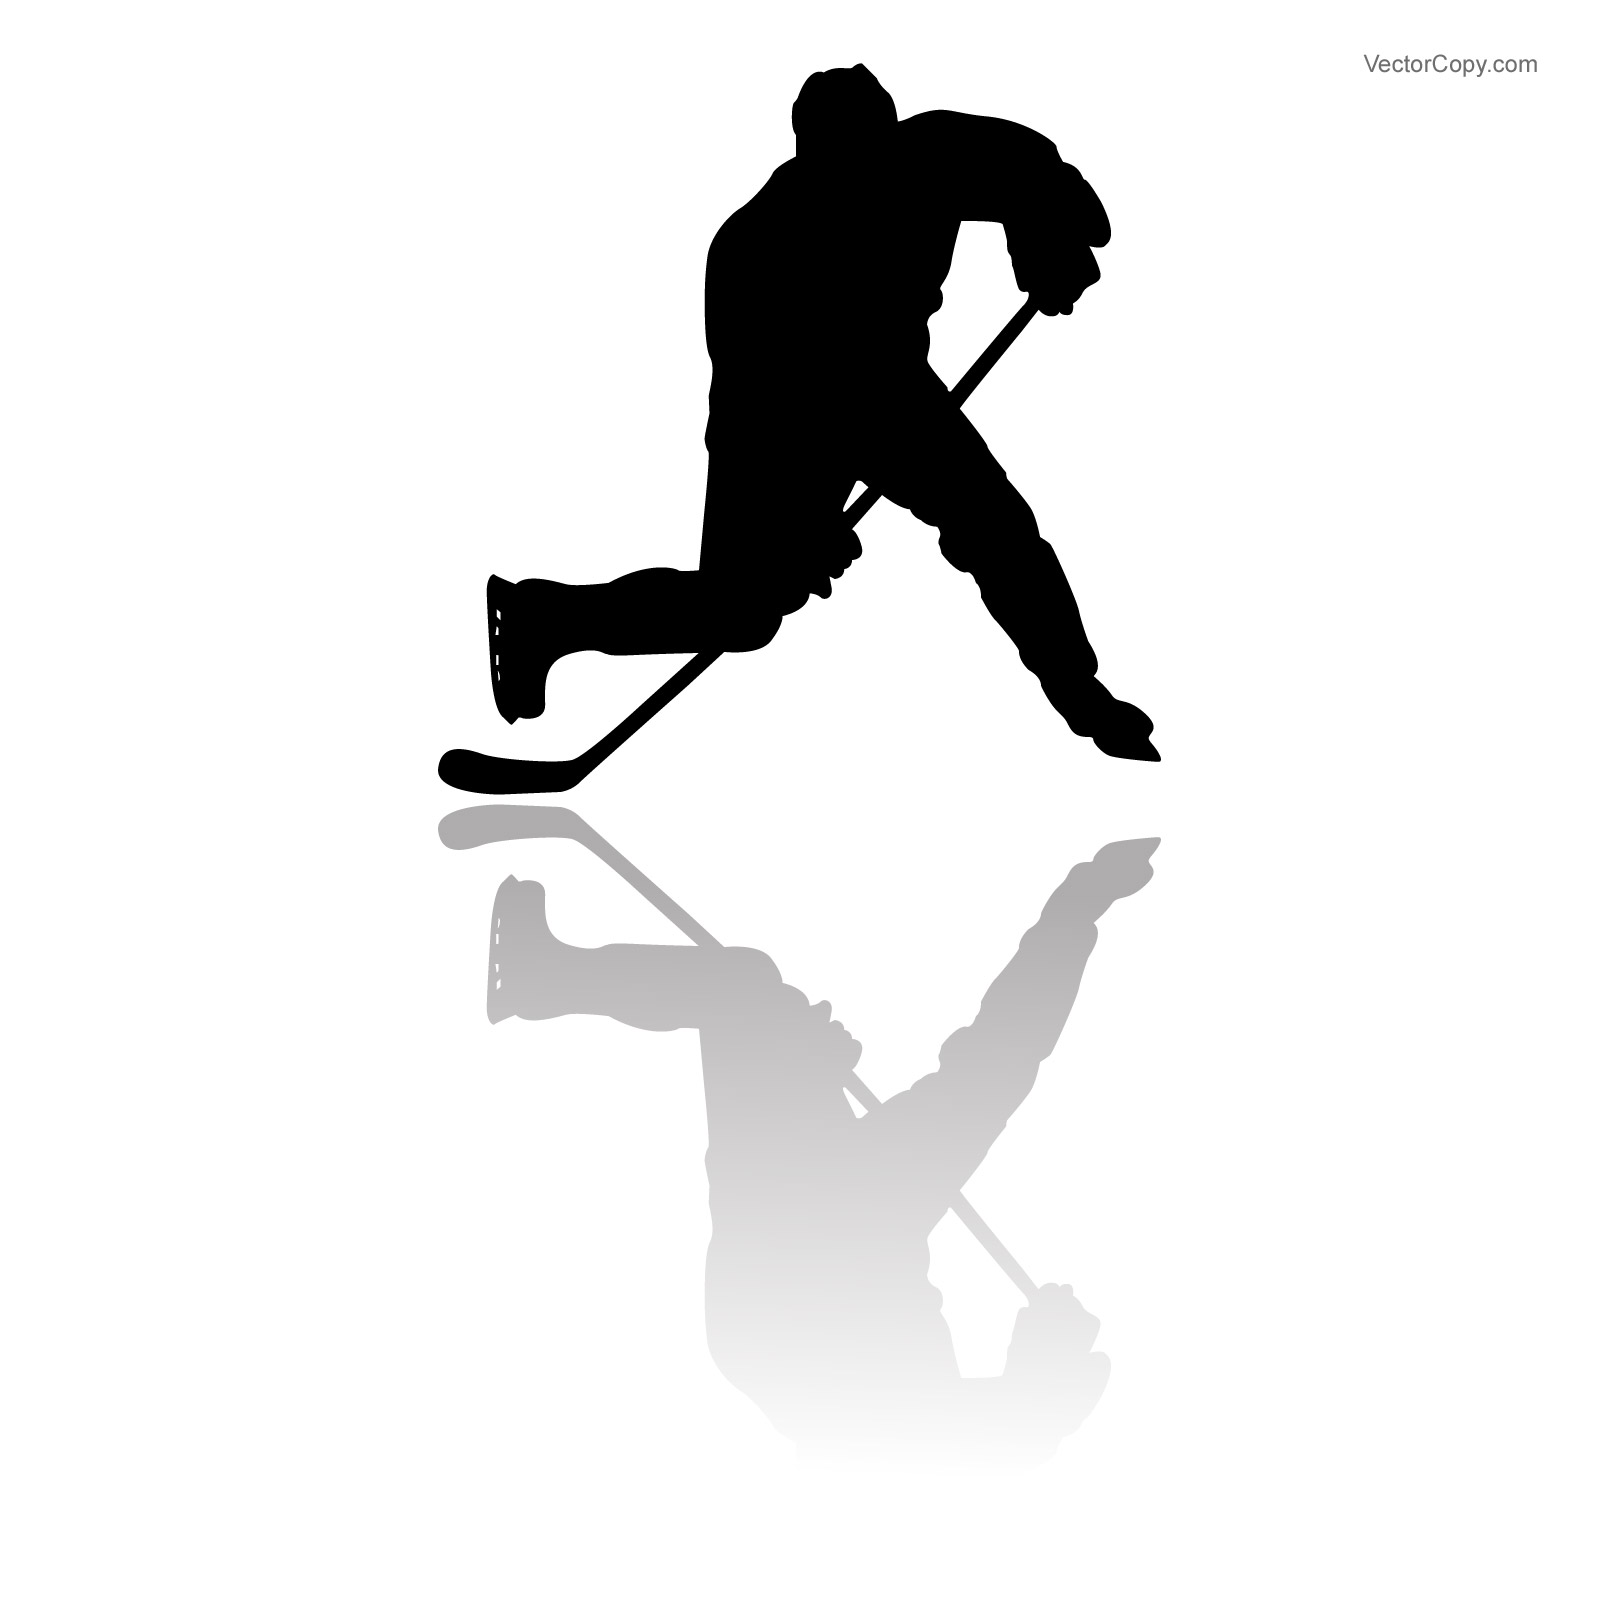 1600x1600 Silhouette Of Hockey Player Free Vector Clipart Image